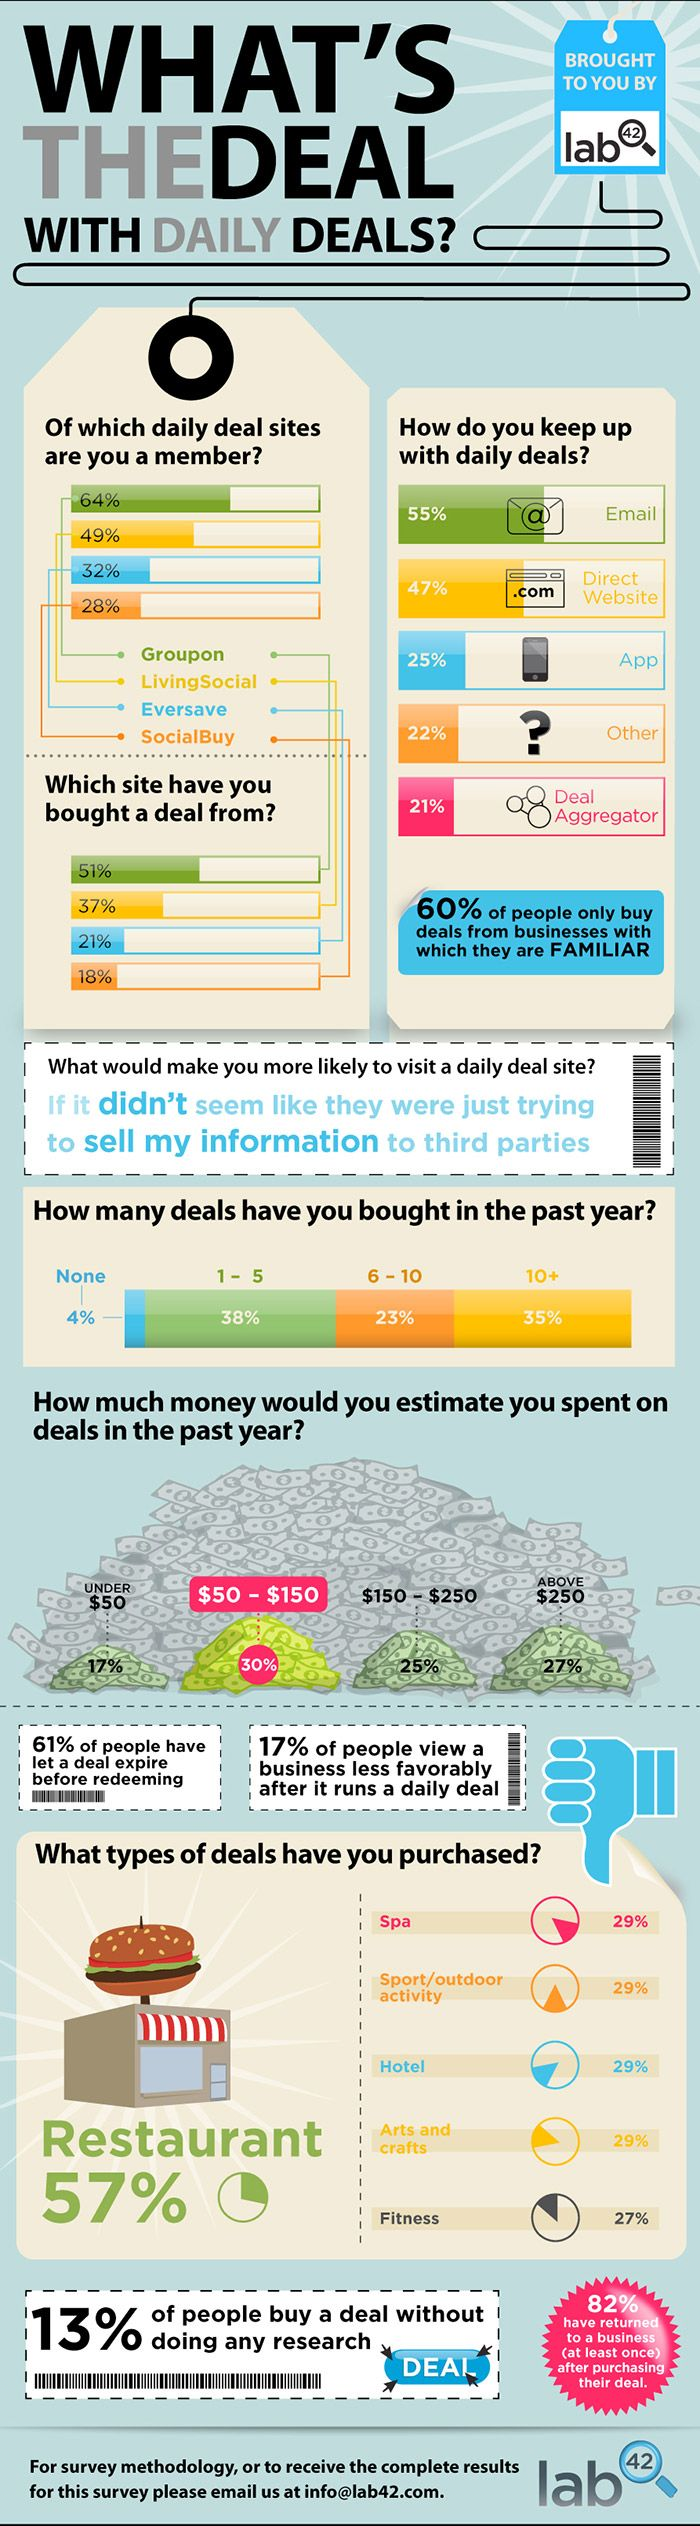 What's the Deal With Daily Deals? [INFOGRAPHIC]  September 10, 2011 by Charlie White  41  2,905  Share